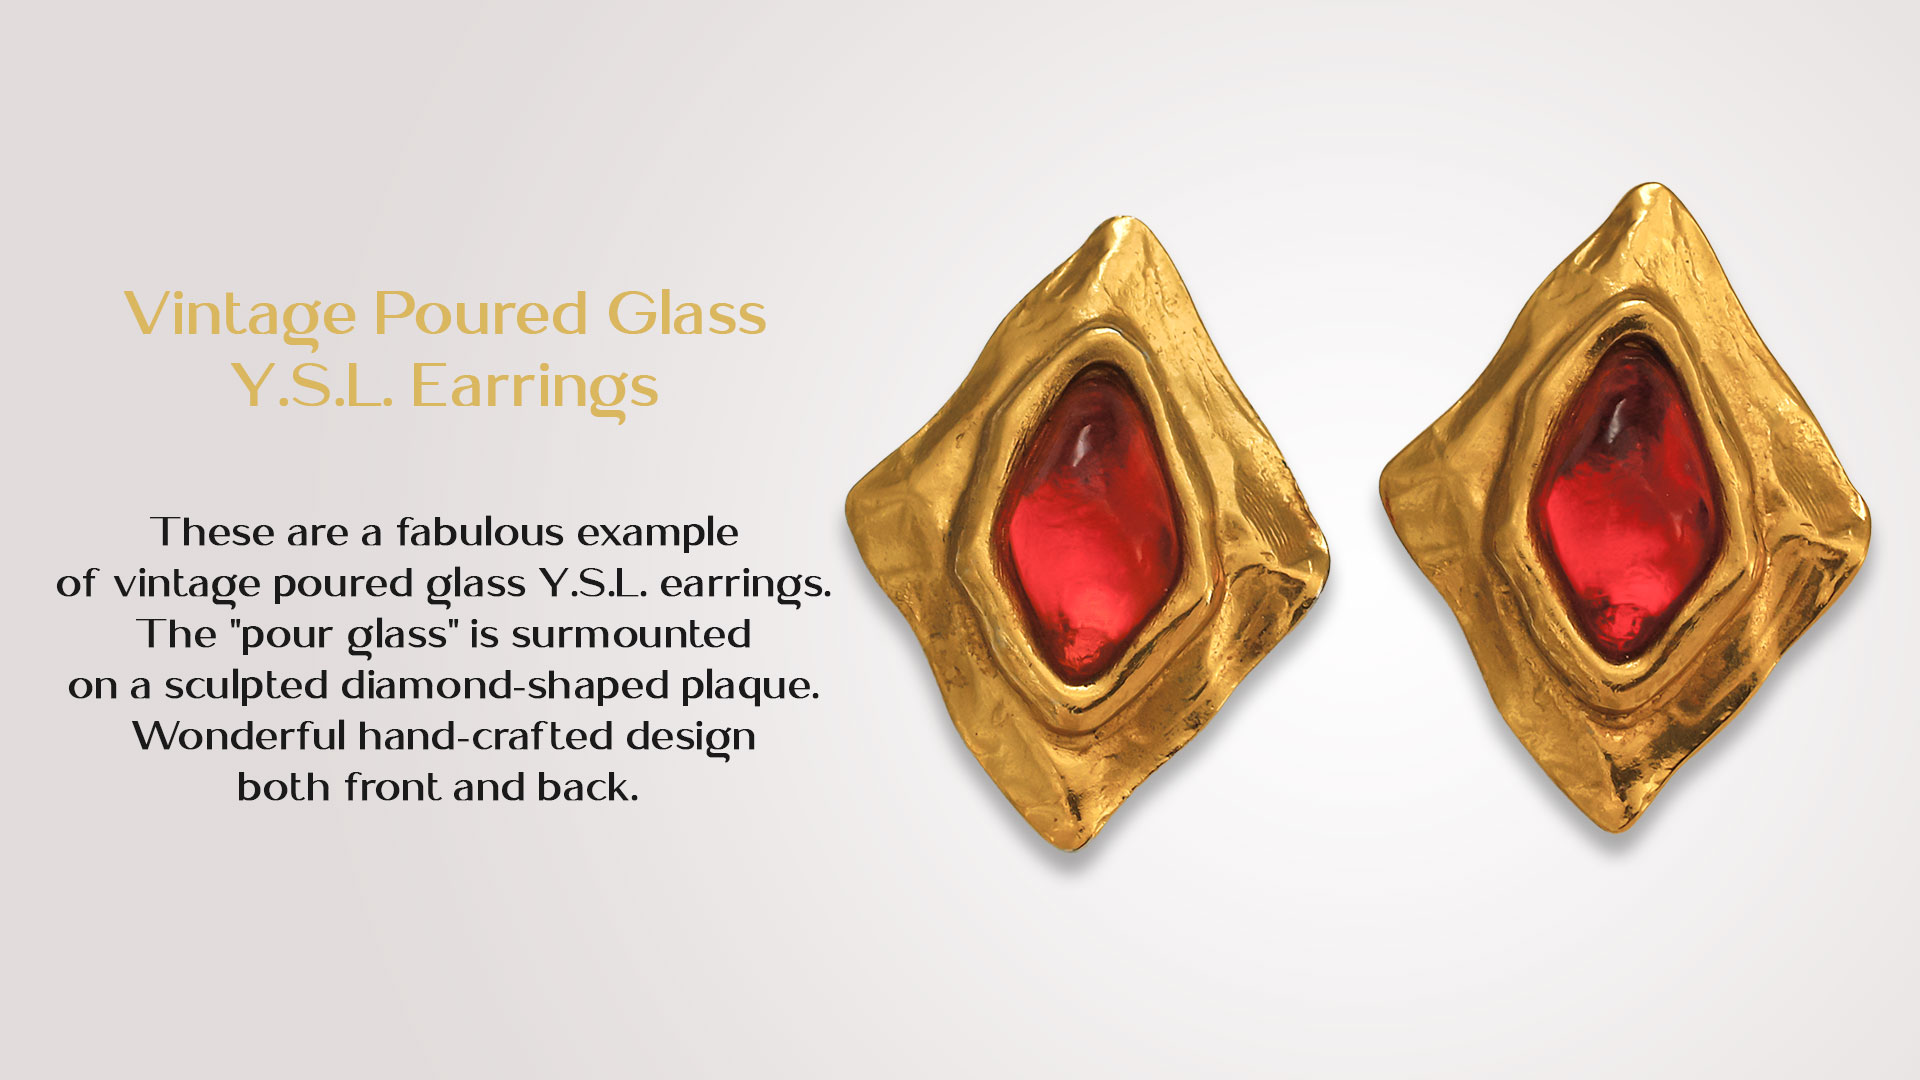 Vintage-Poured-Glass-Y.S.L.-Earrings